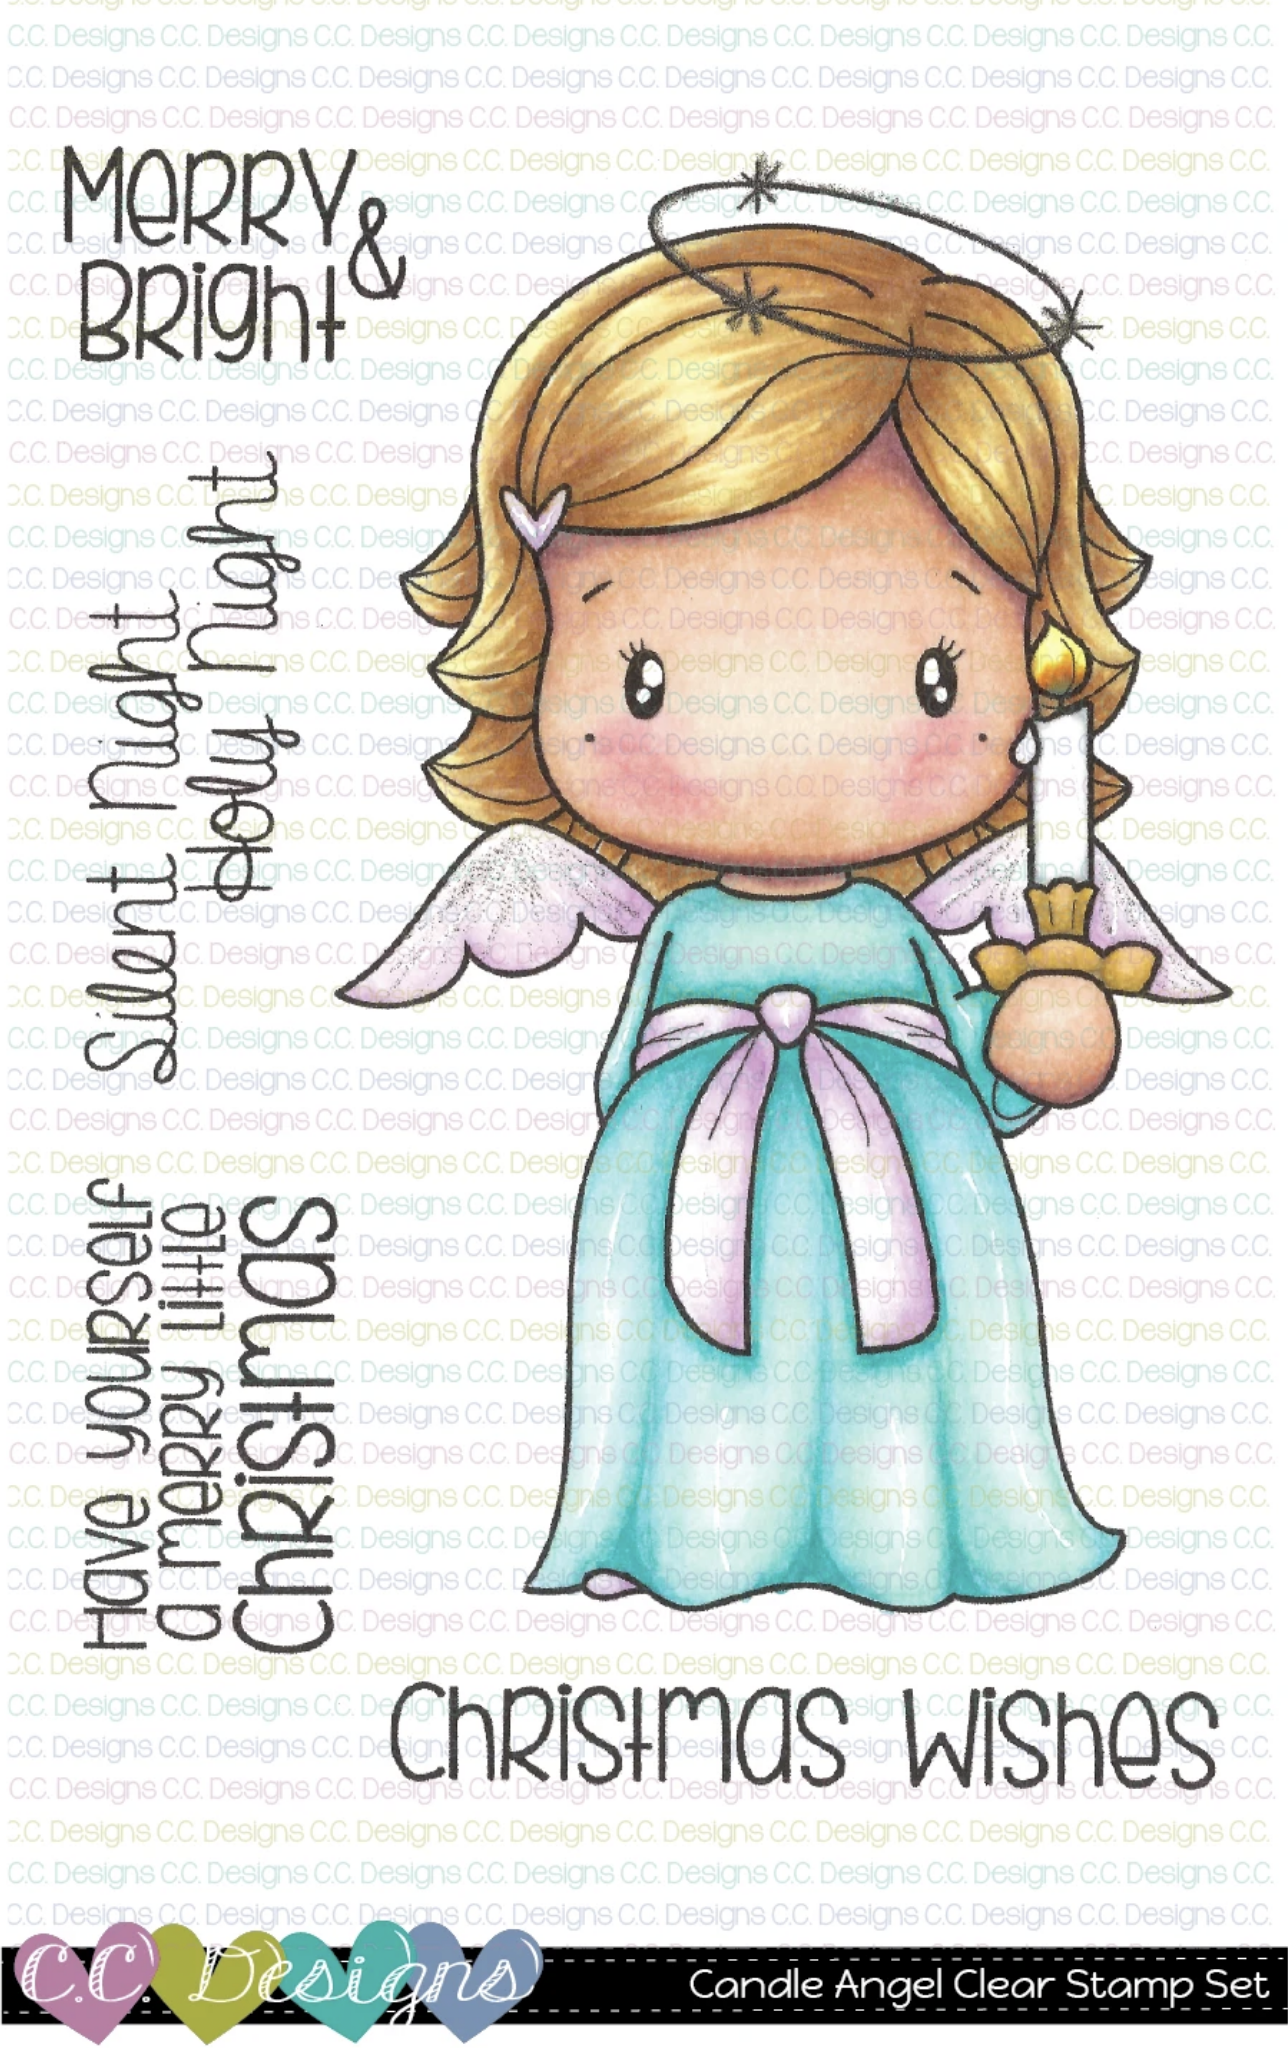 CANDLE ANGEL SWISSIE CLEAR STAMP SET